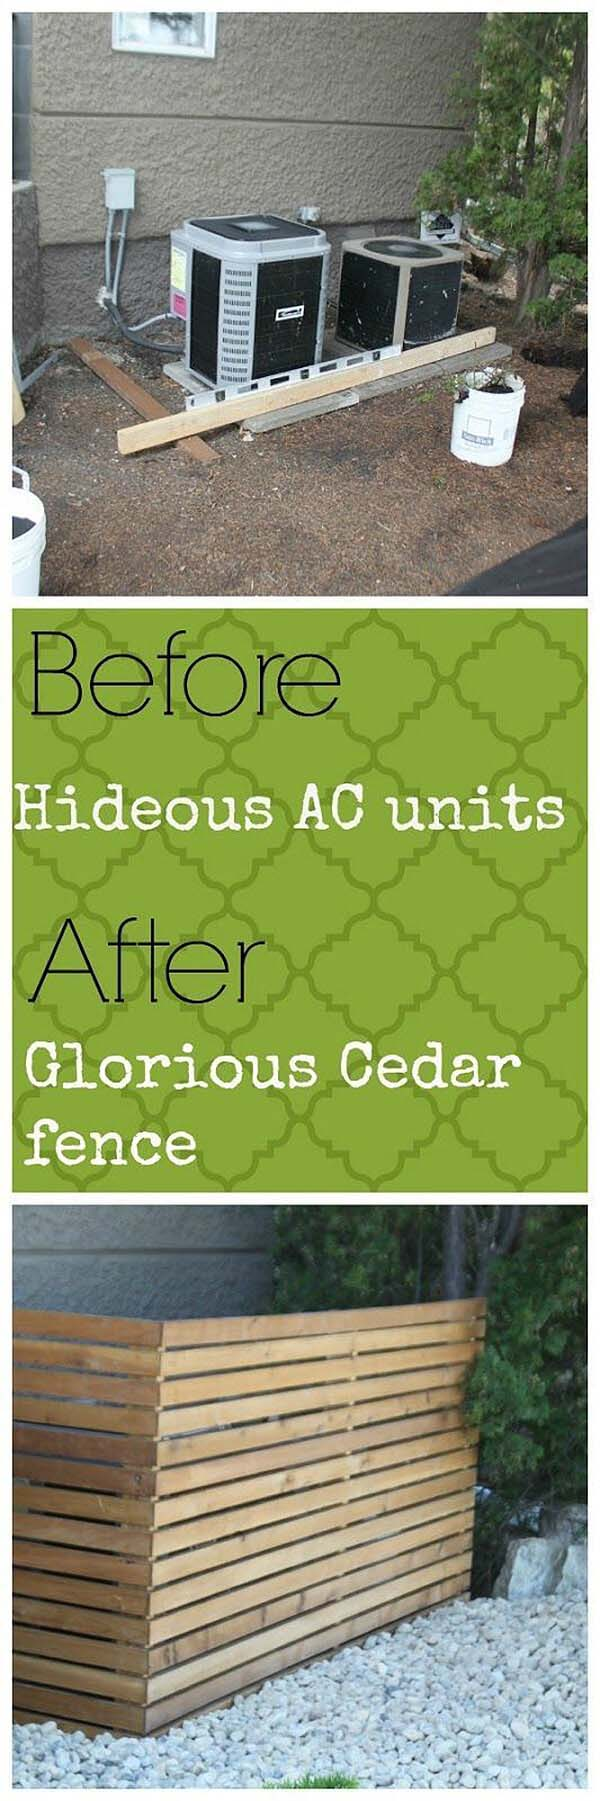 Cedar Fence Idea #outdoor #hiding #ideas #decorhomeideas